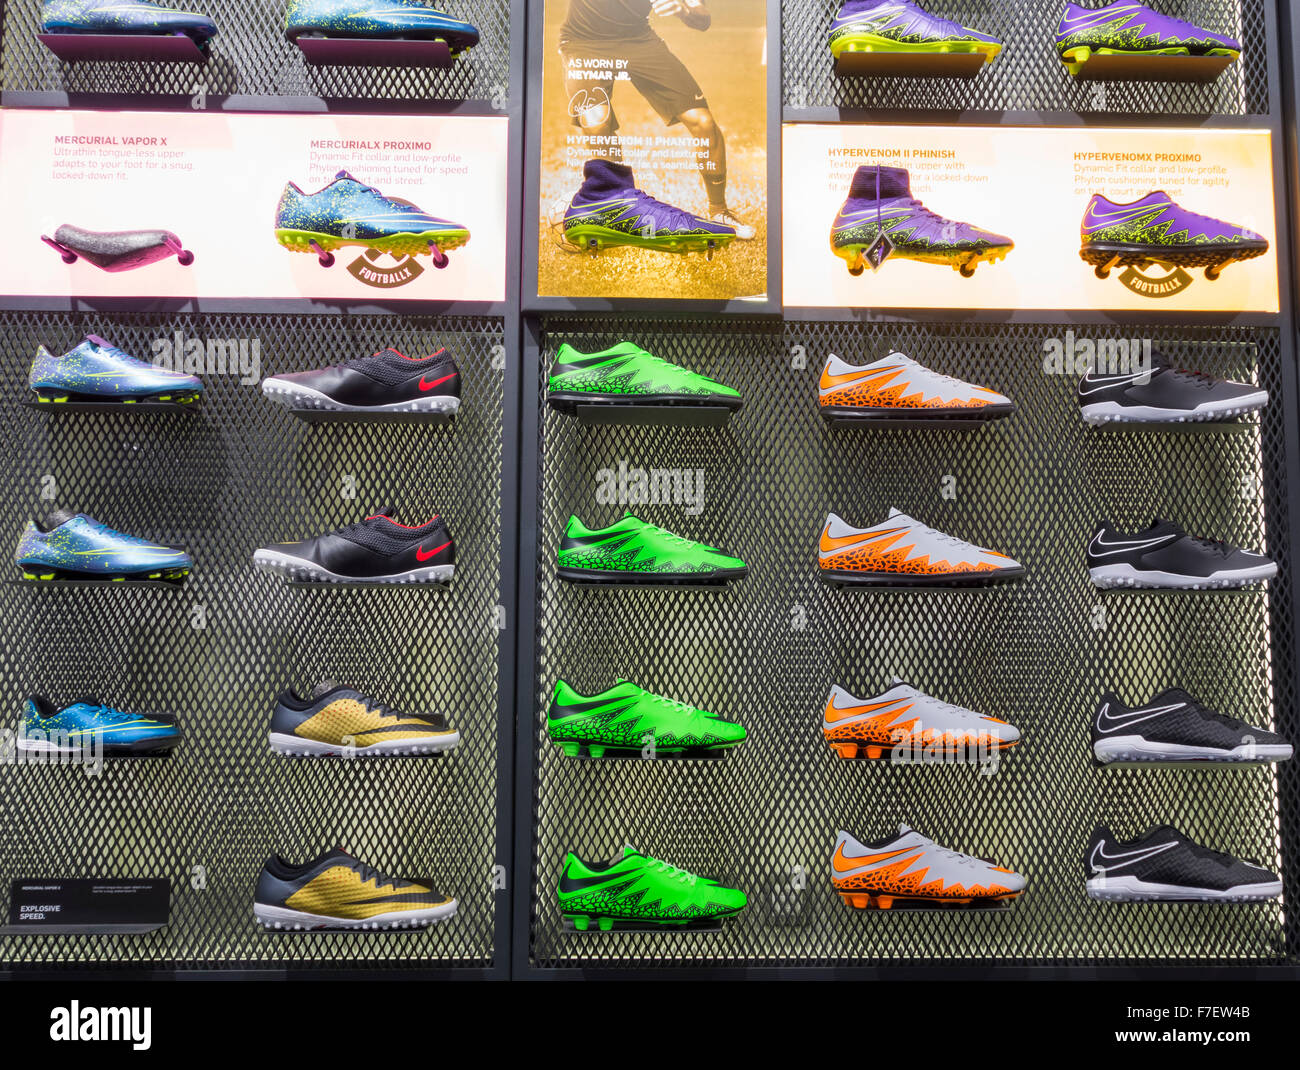 Football Boots Stock Photos   Football Boots Stock Images - Page 3 ... 9d2a8373247db